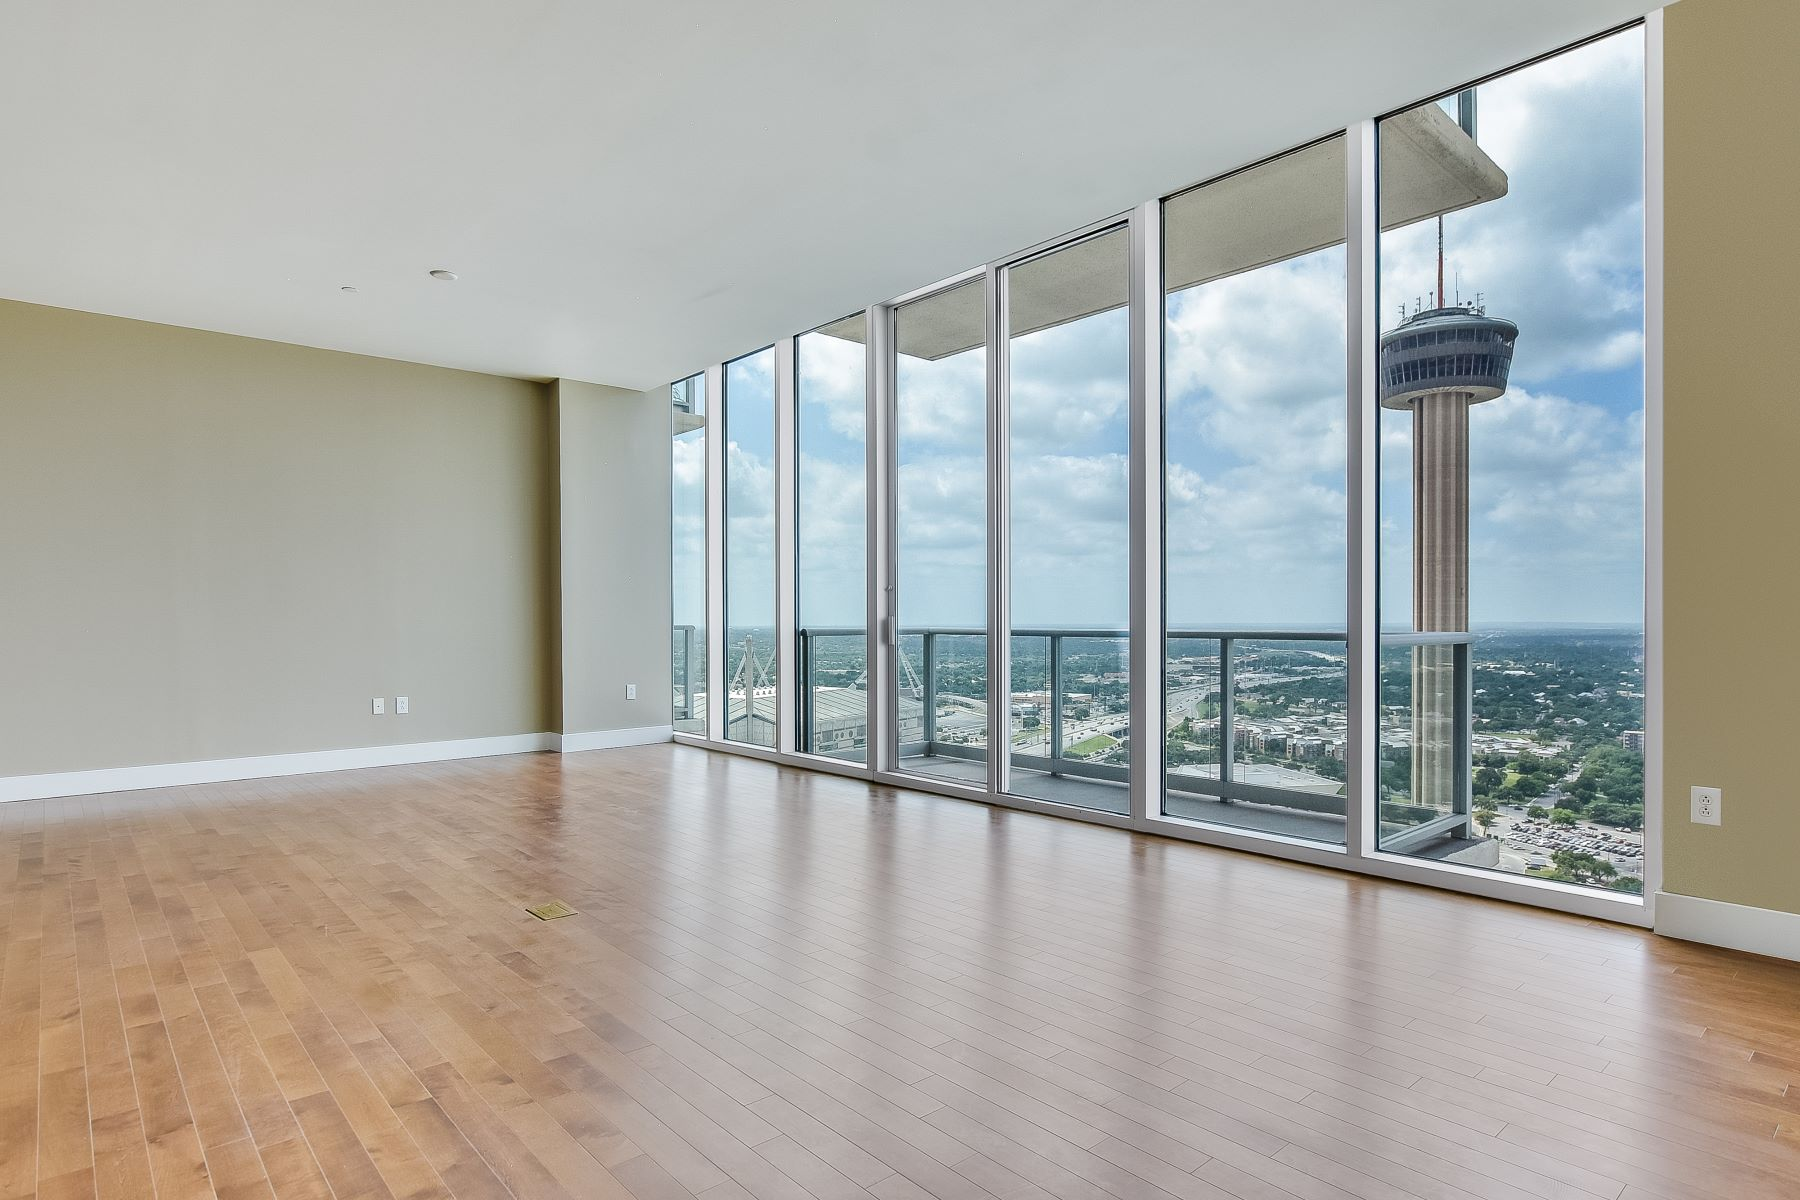 Condominio por un Alquiler en Luxury Living at Alteza 610 E. Market Street #3111 San Antonio, Texas 78205 Estados Unidos